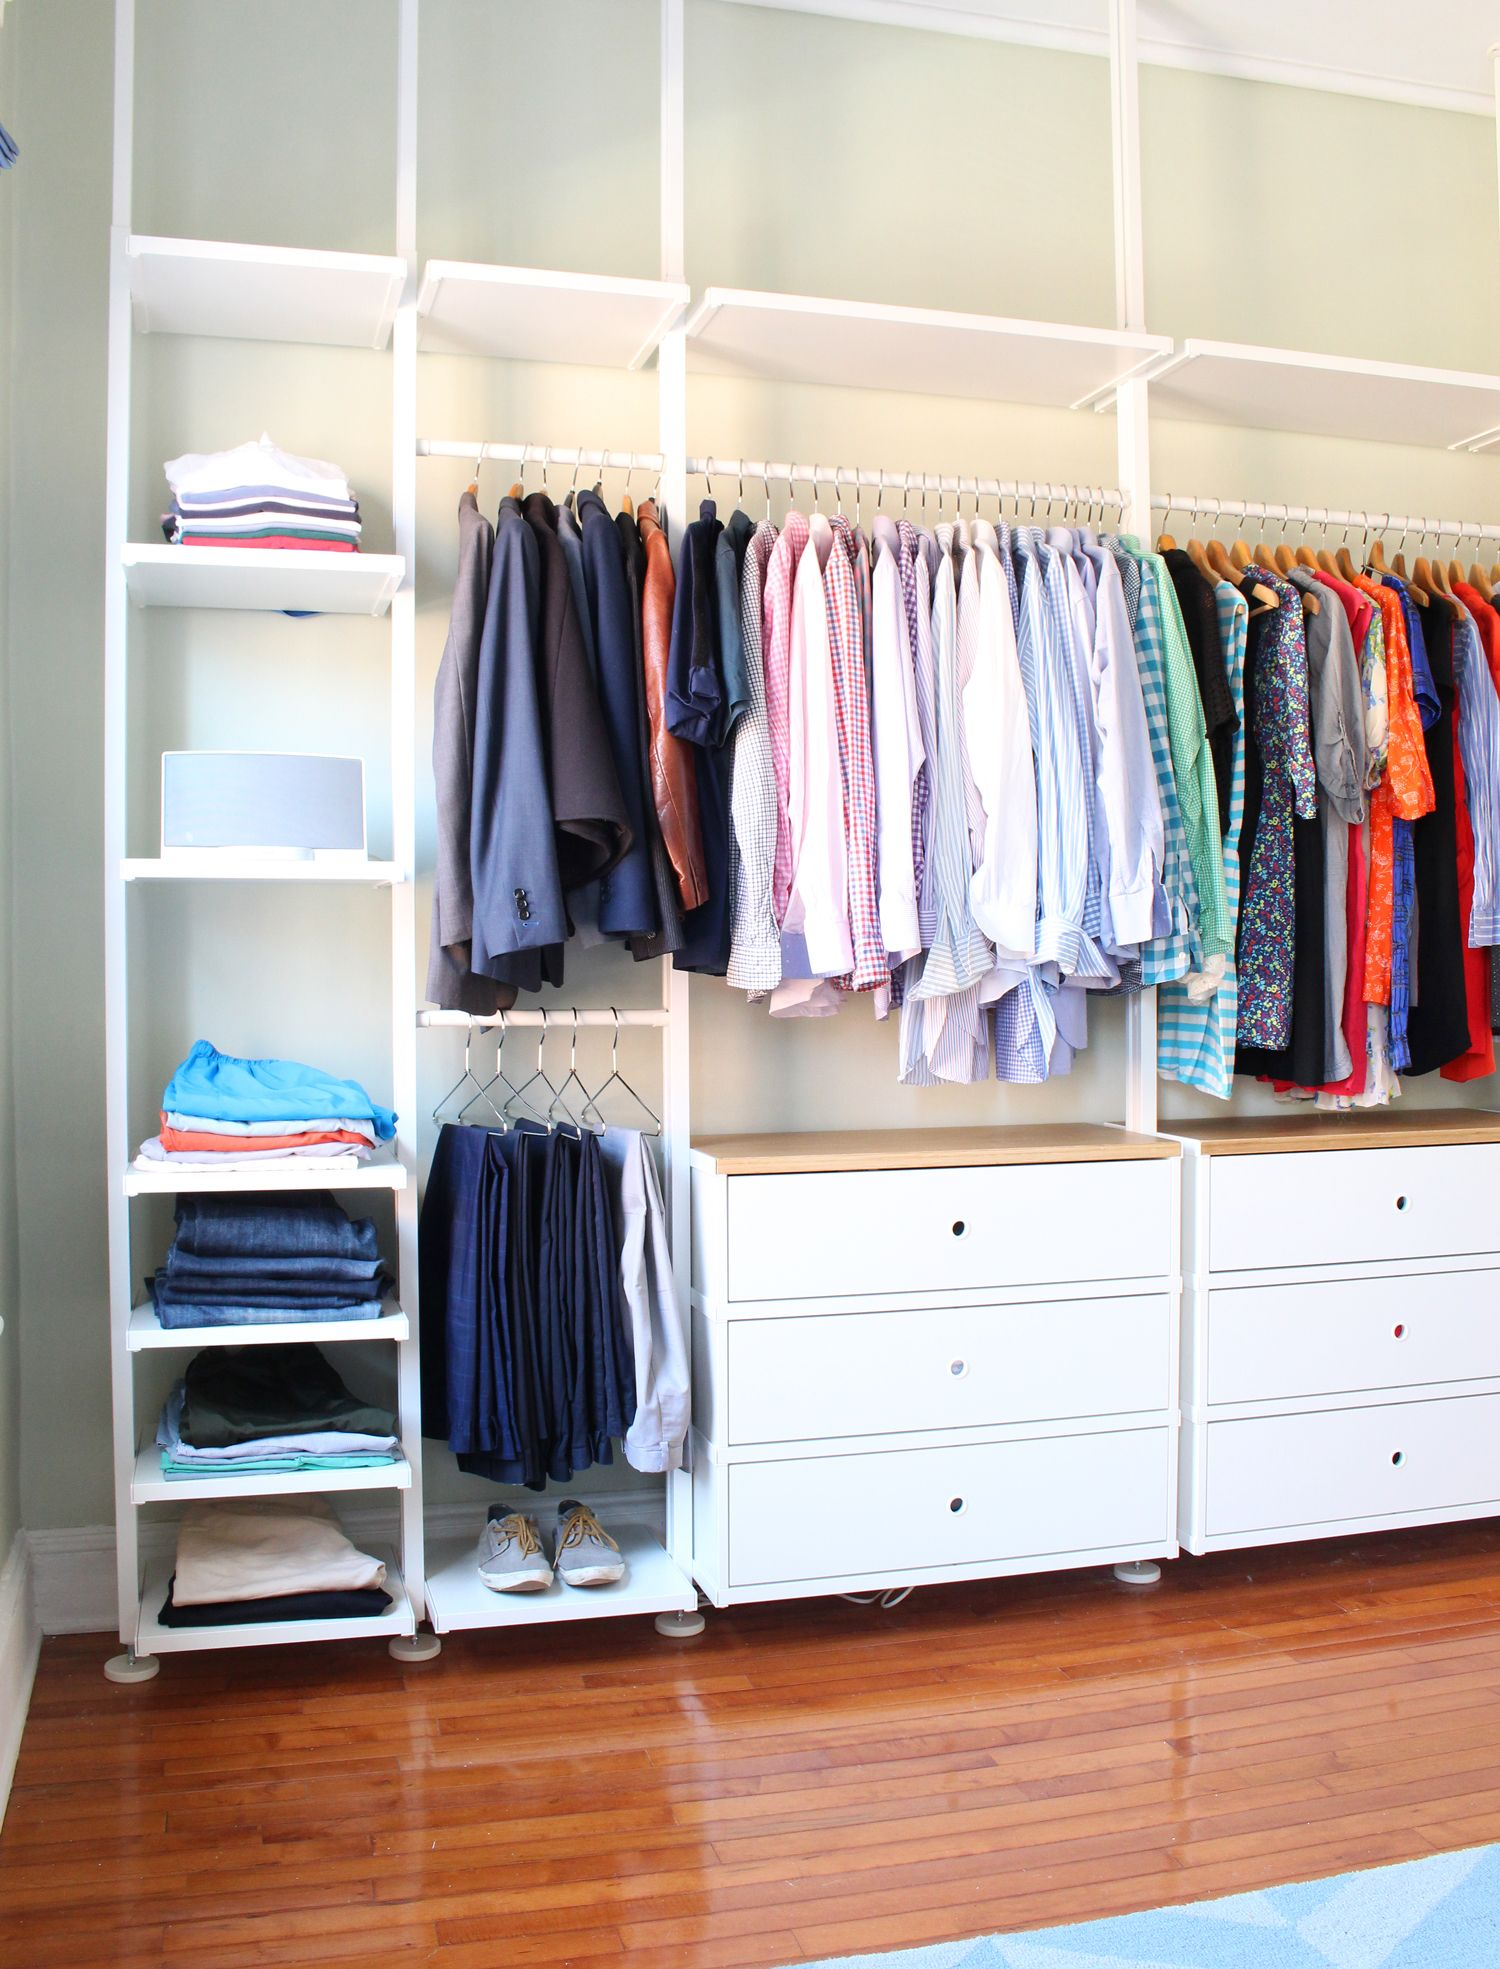 Five Small Space Design Ideas That Balance Style Function Closet Organizing Systems Small Space Design Custom Closet Organization